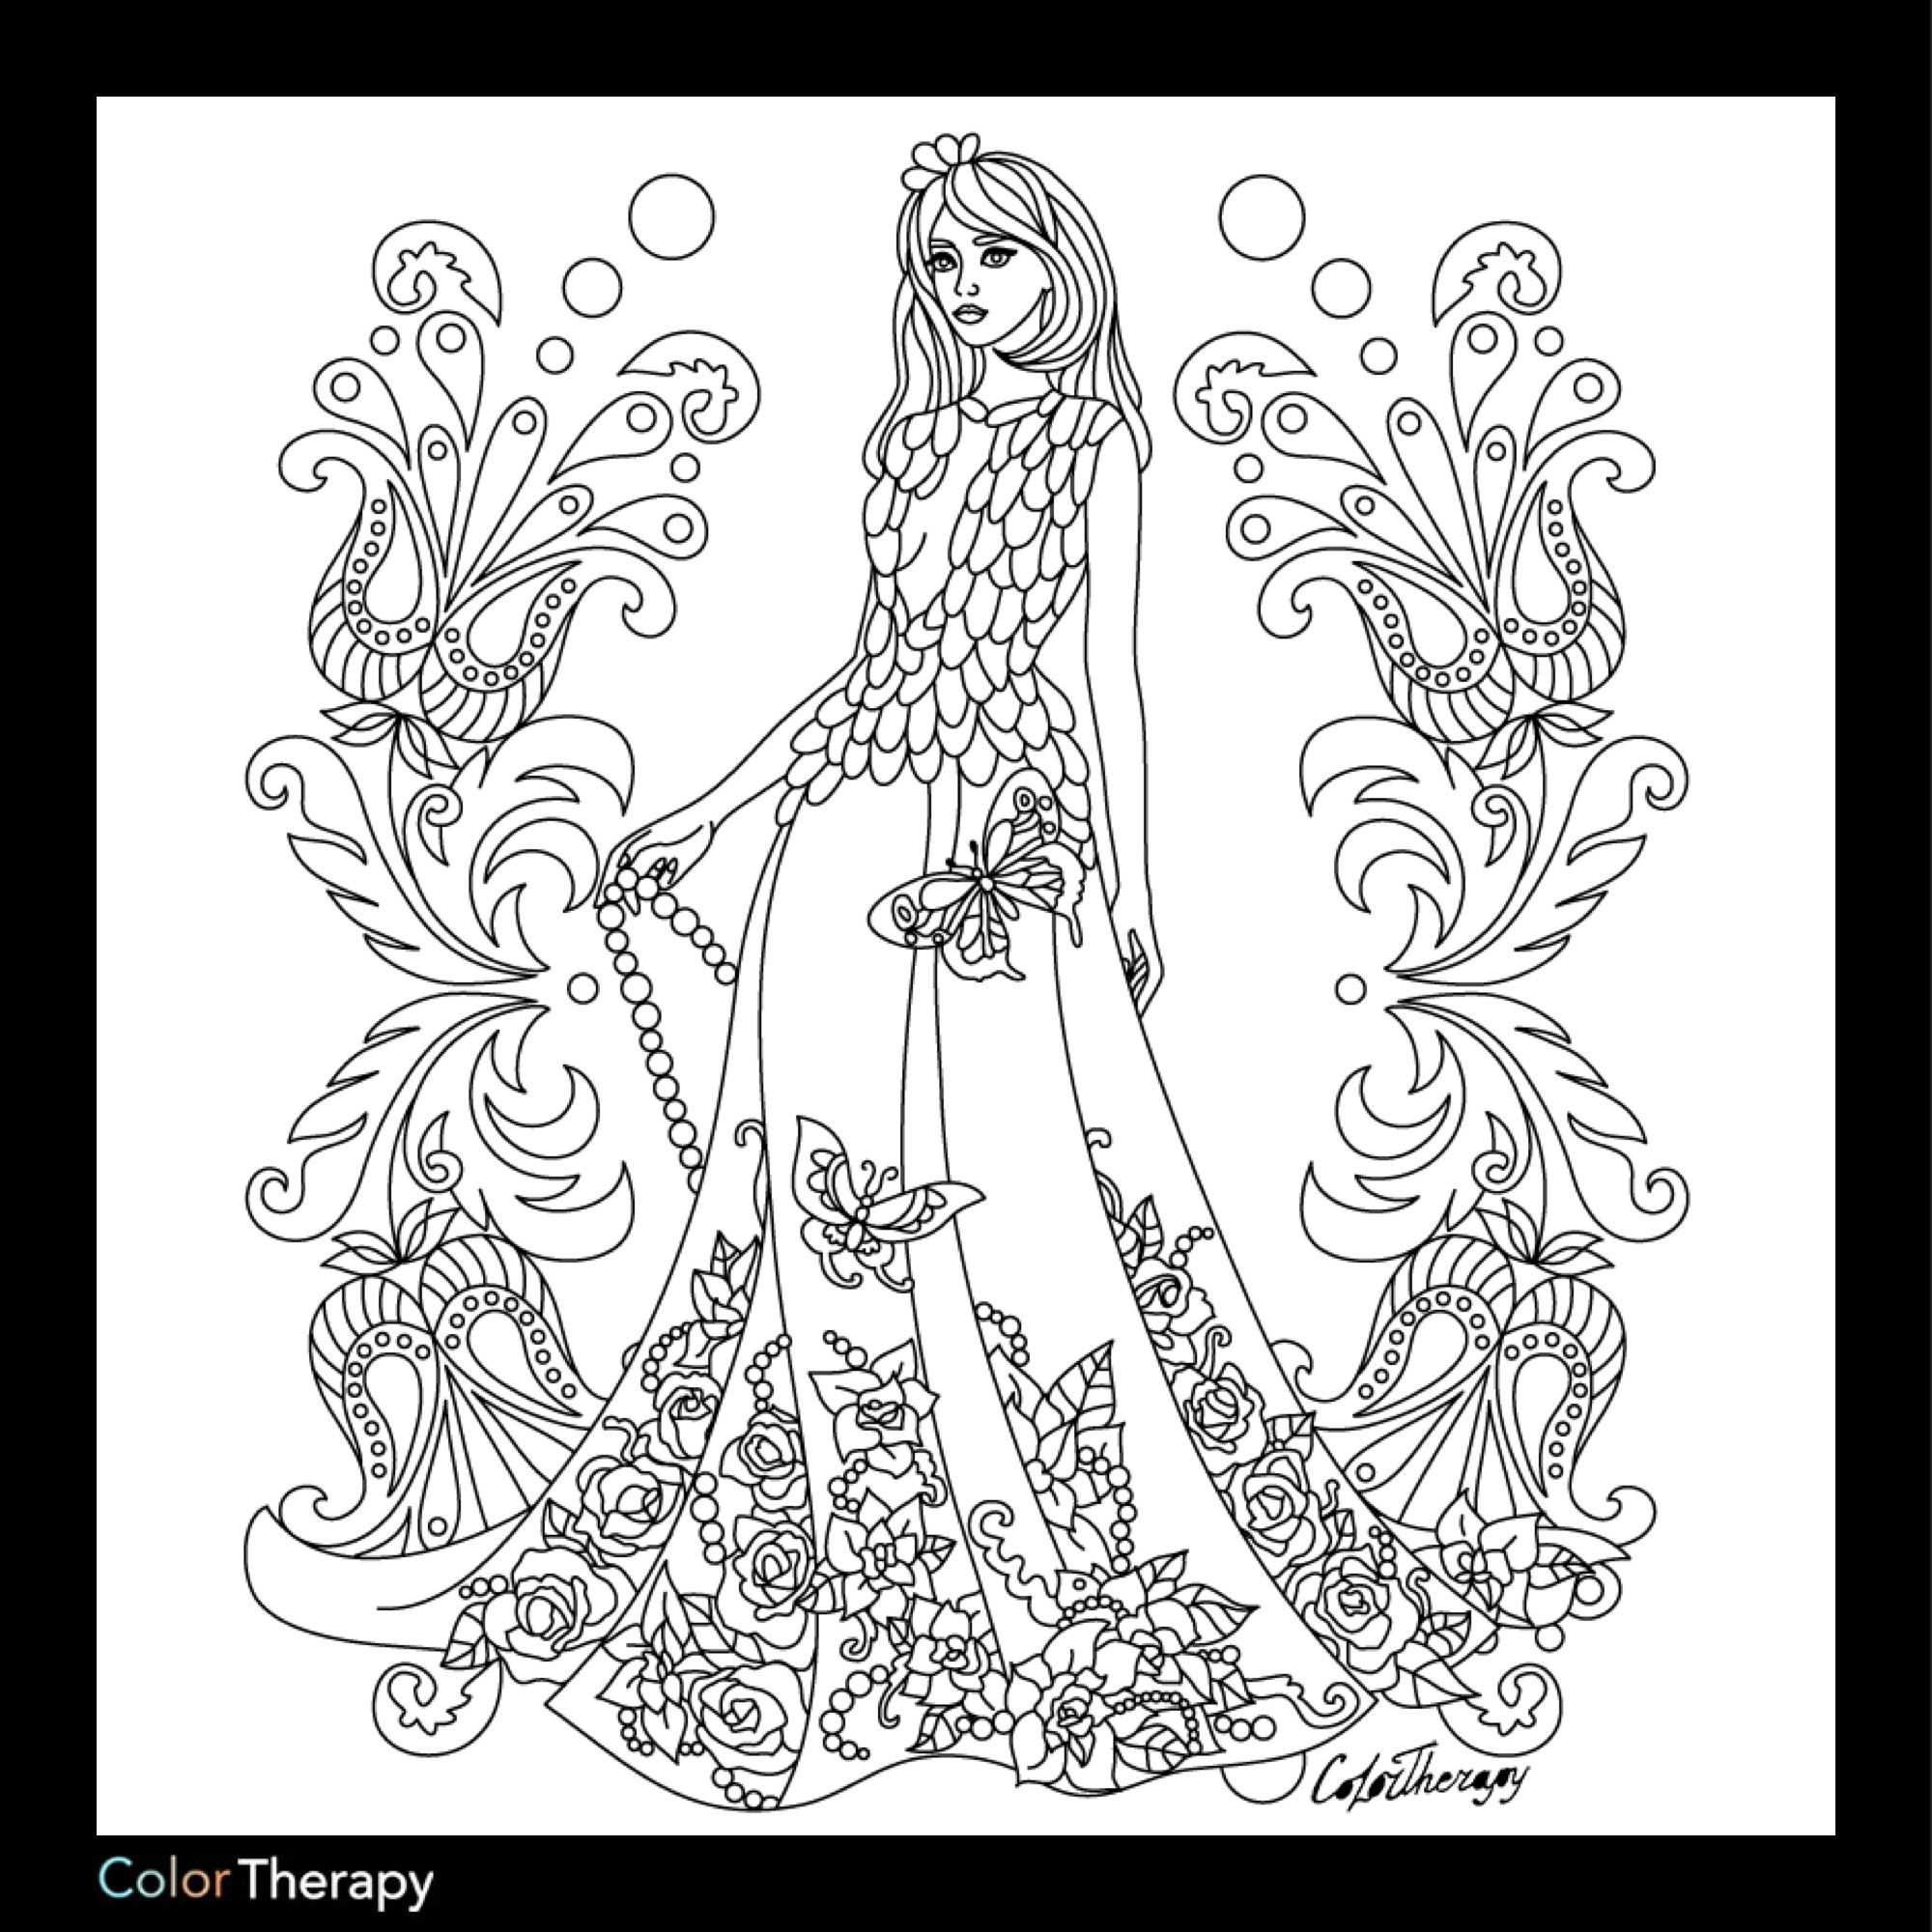 Pin By Cheryl Korotky On Coloring Pages Coloring Books Coloring Pages Color Therapy